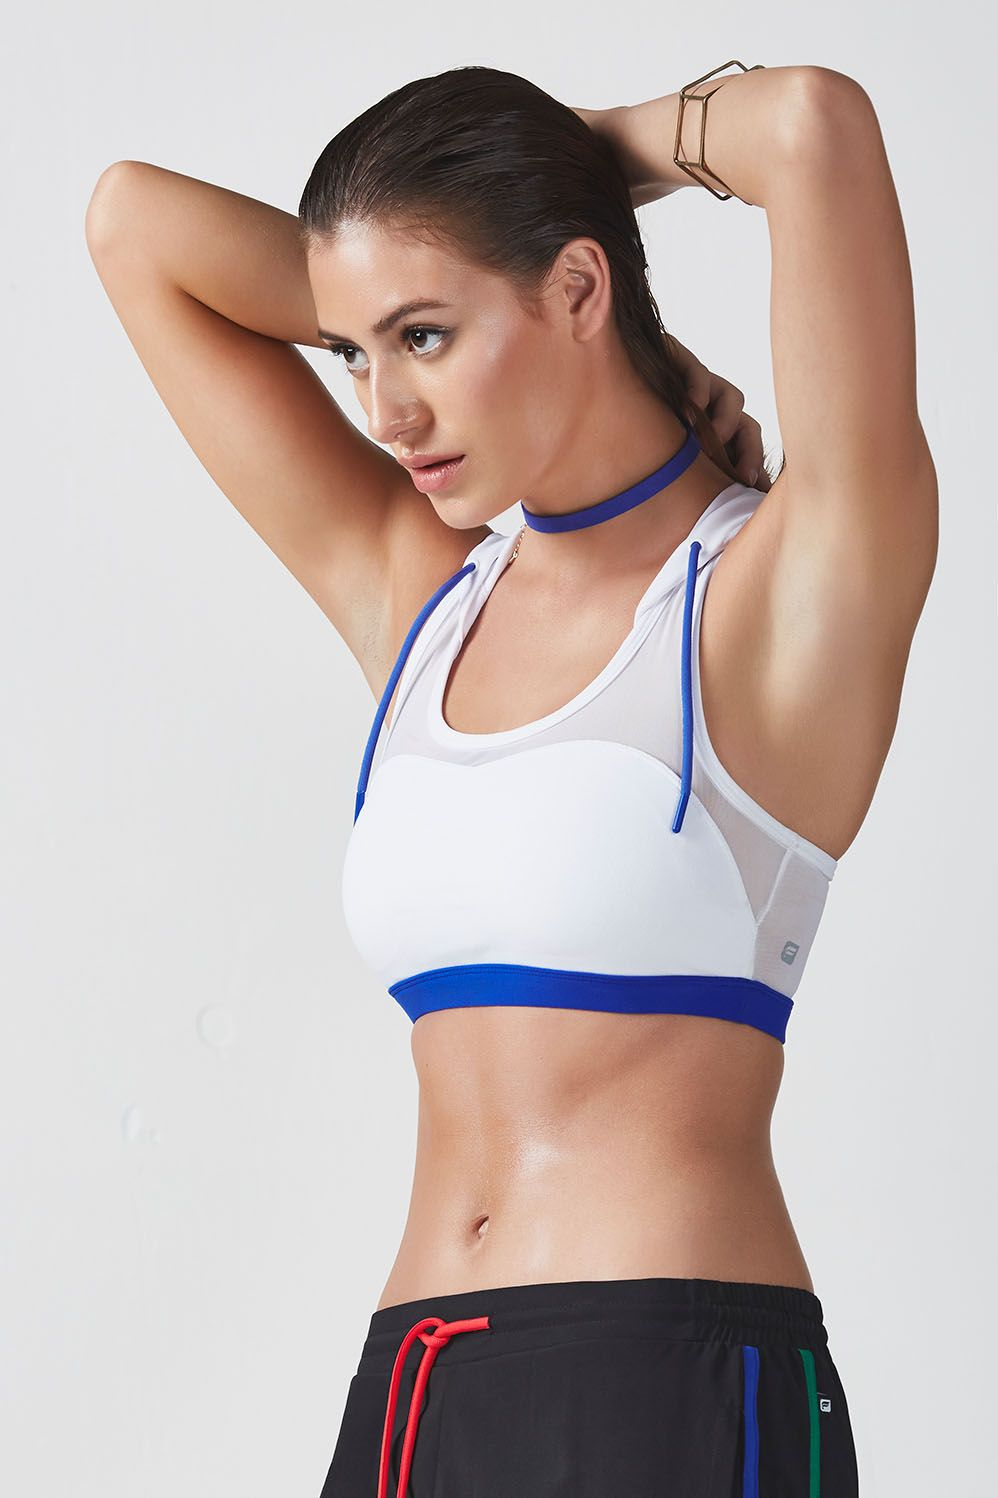 b40773dde2 Dominate the game in our power-mesh sports bra with a cool hoodie. A  sporty